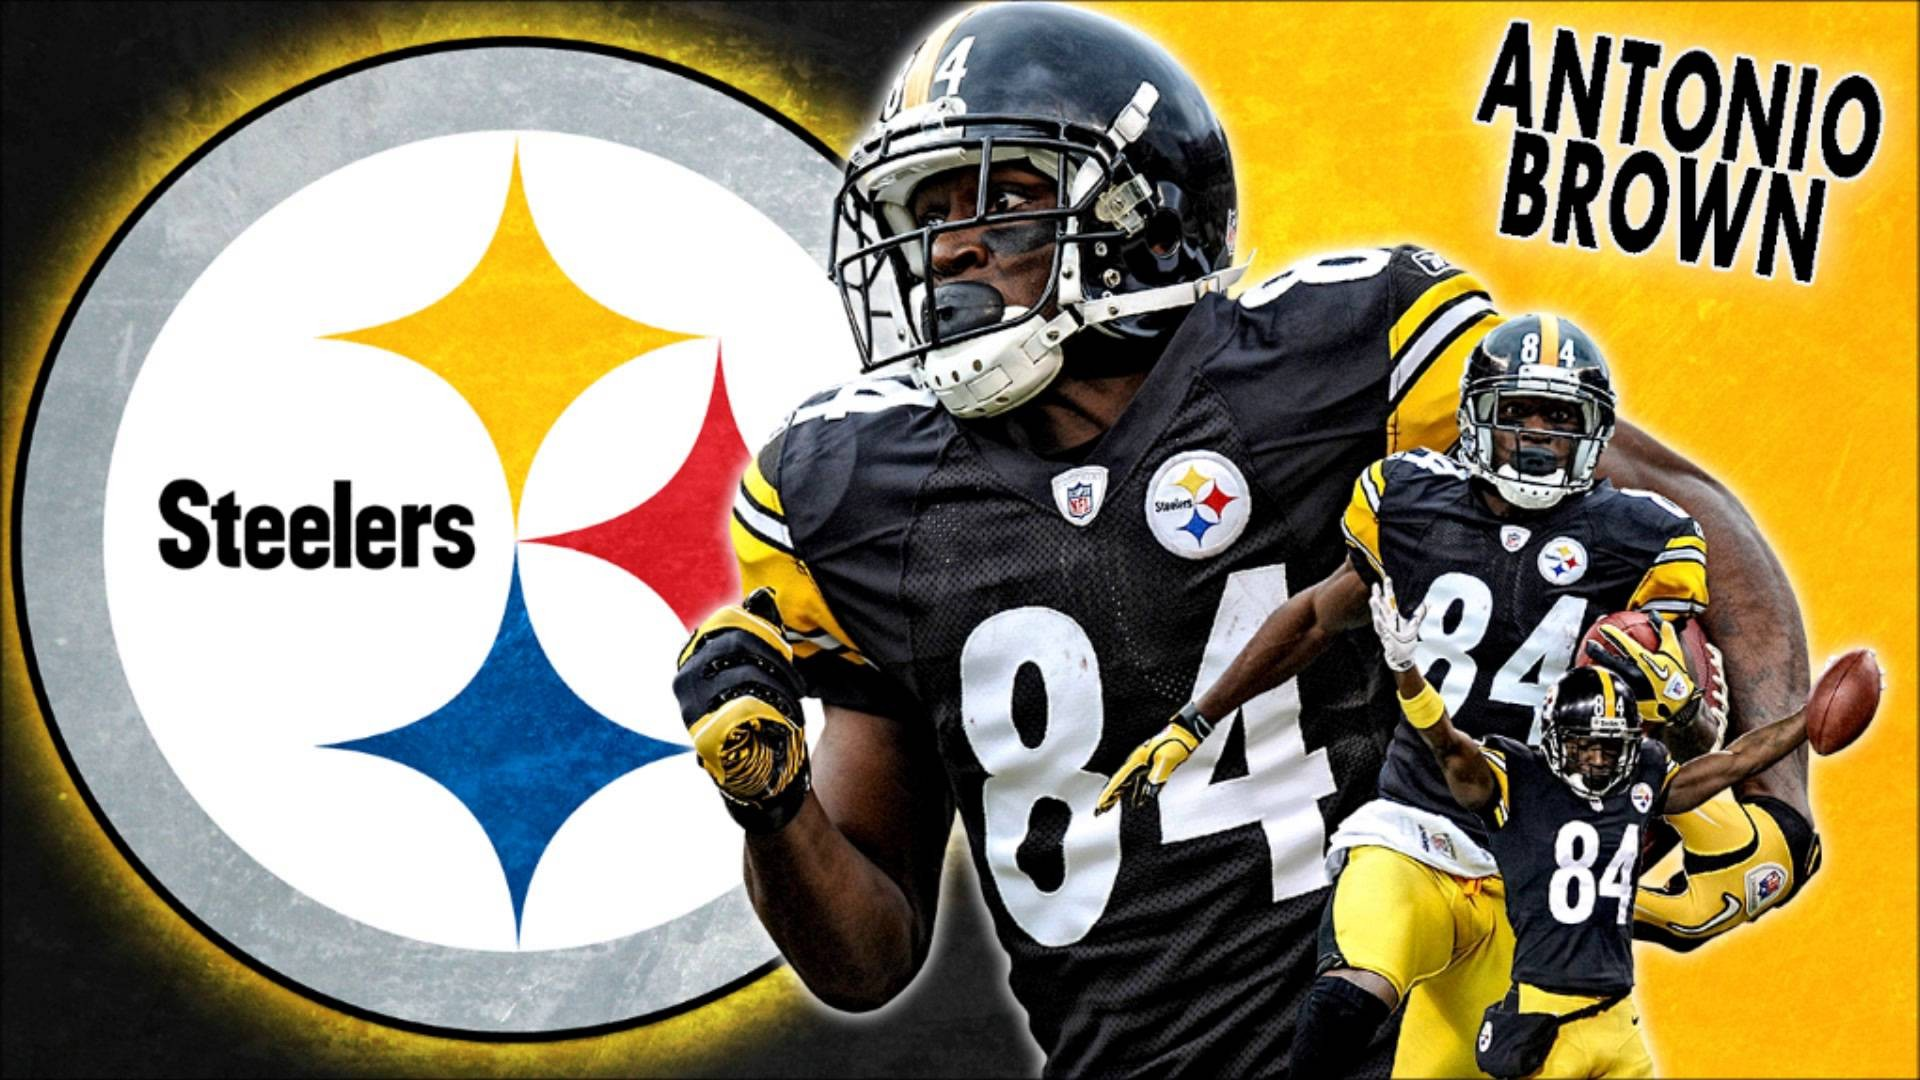 Antonio Brown Wallpaper Download Free Awesome Hd